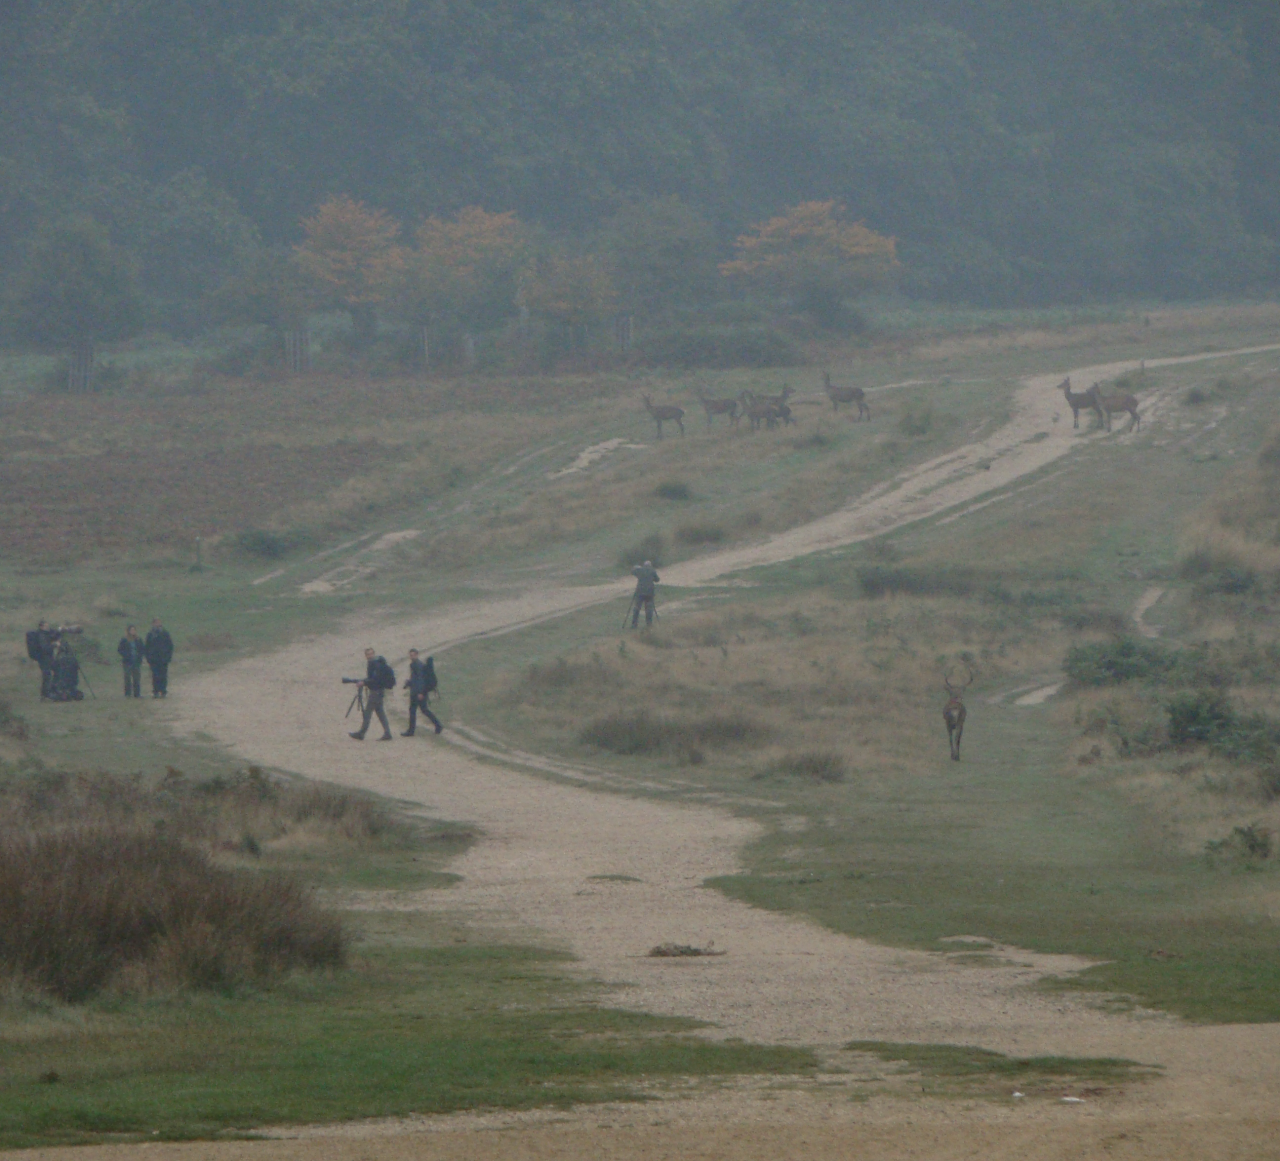 Red deer and photographers in Richmond Park, London, 3 October 2015